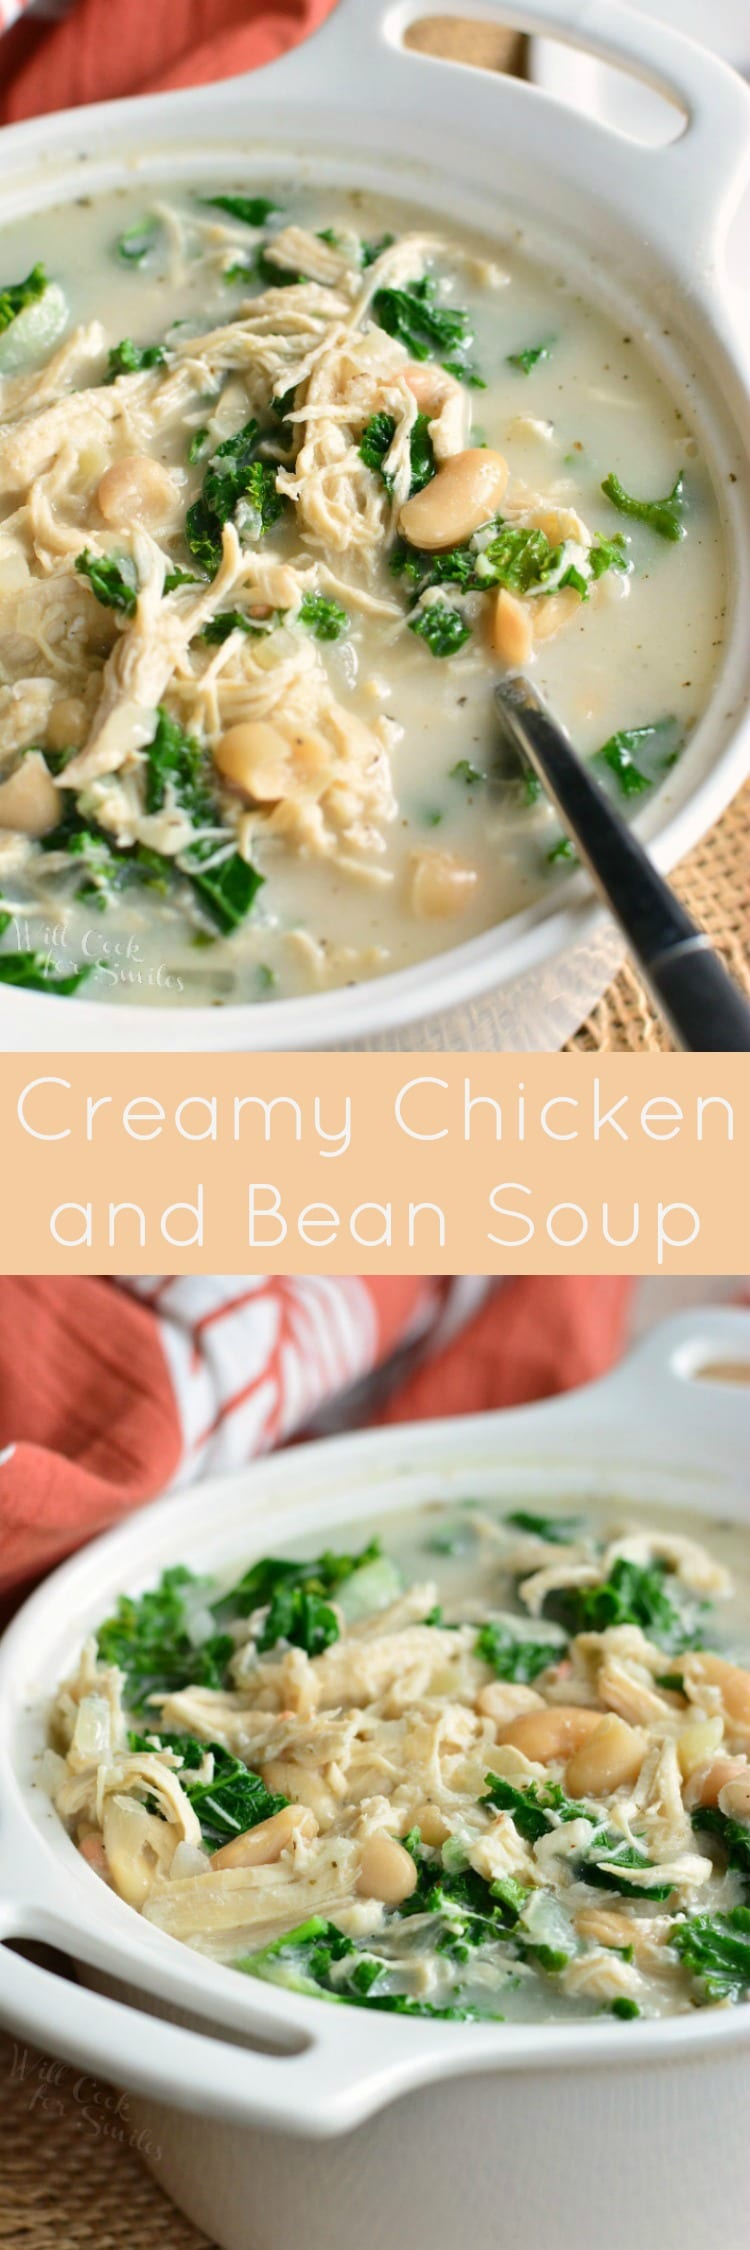 Creamy Chicken and Bean Soup. This creamy soup is actually light and made with shredded chicken breast, two types of beans, and kale. #chickensoup #soup #healthysoup